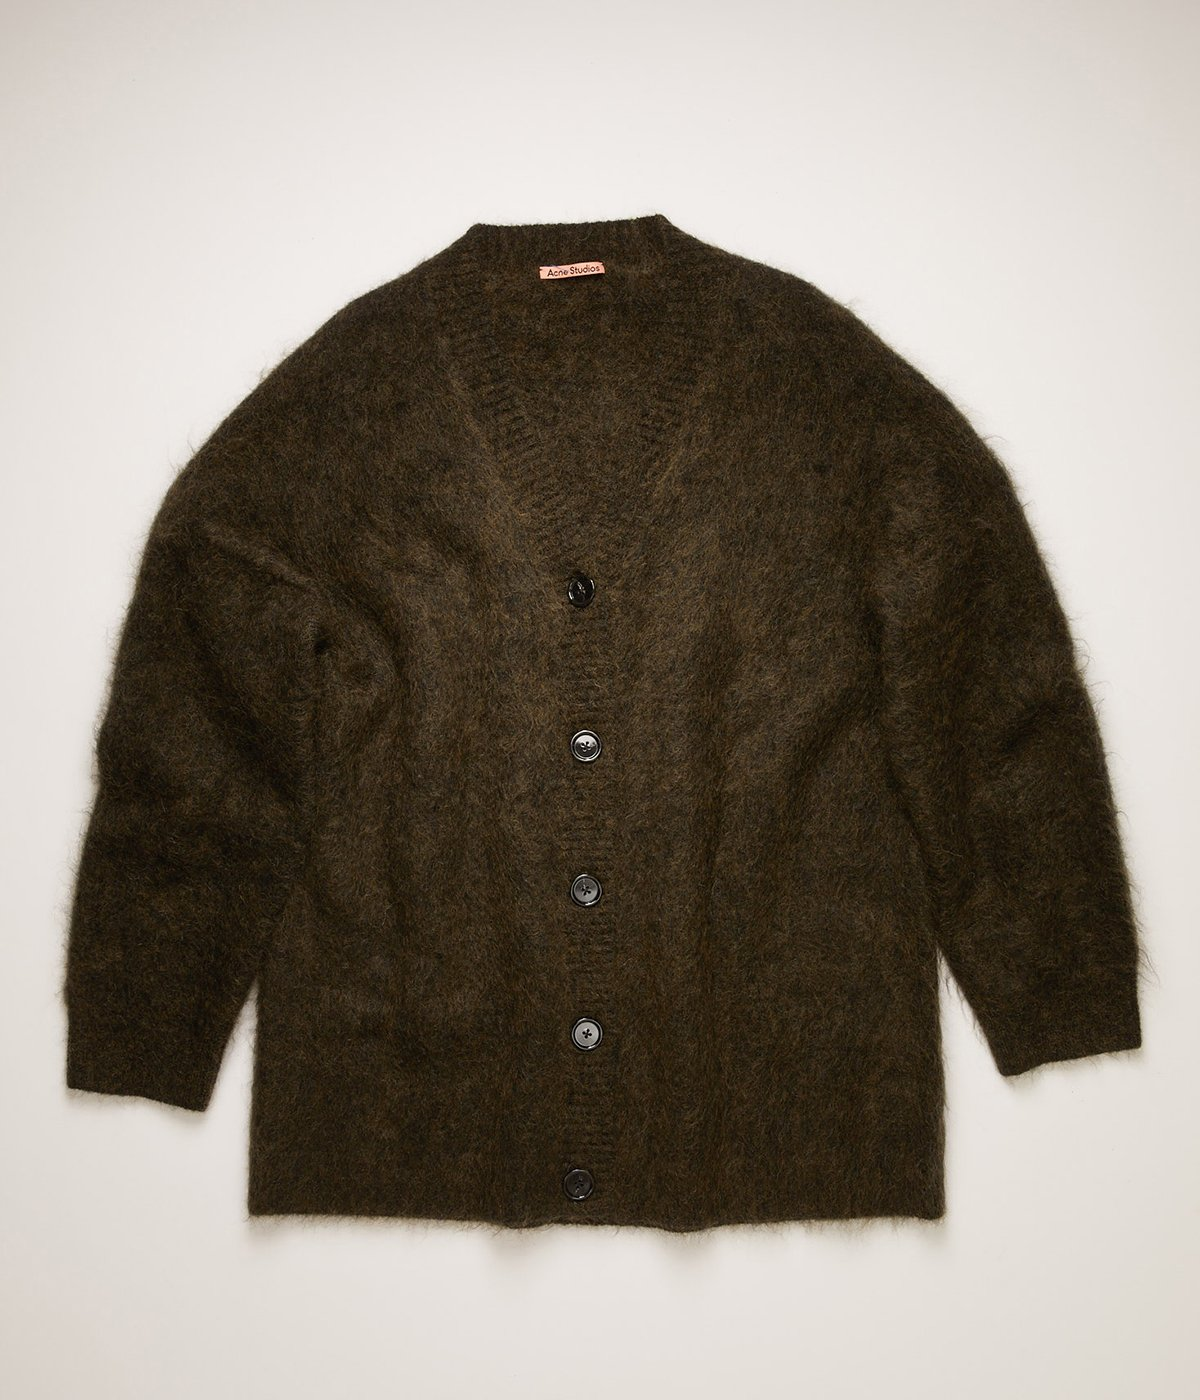 【レディース】FN-WN-KNIT000249(Cardigan)